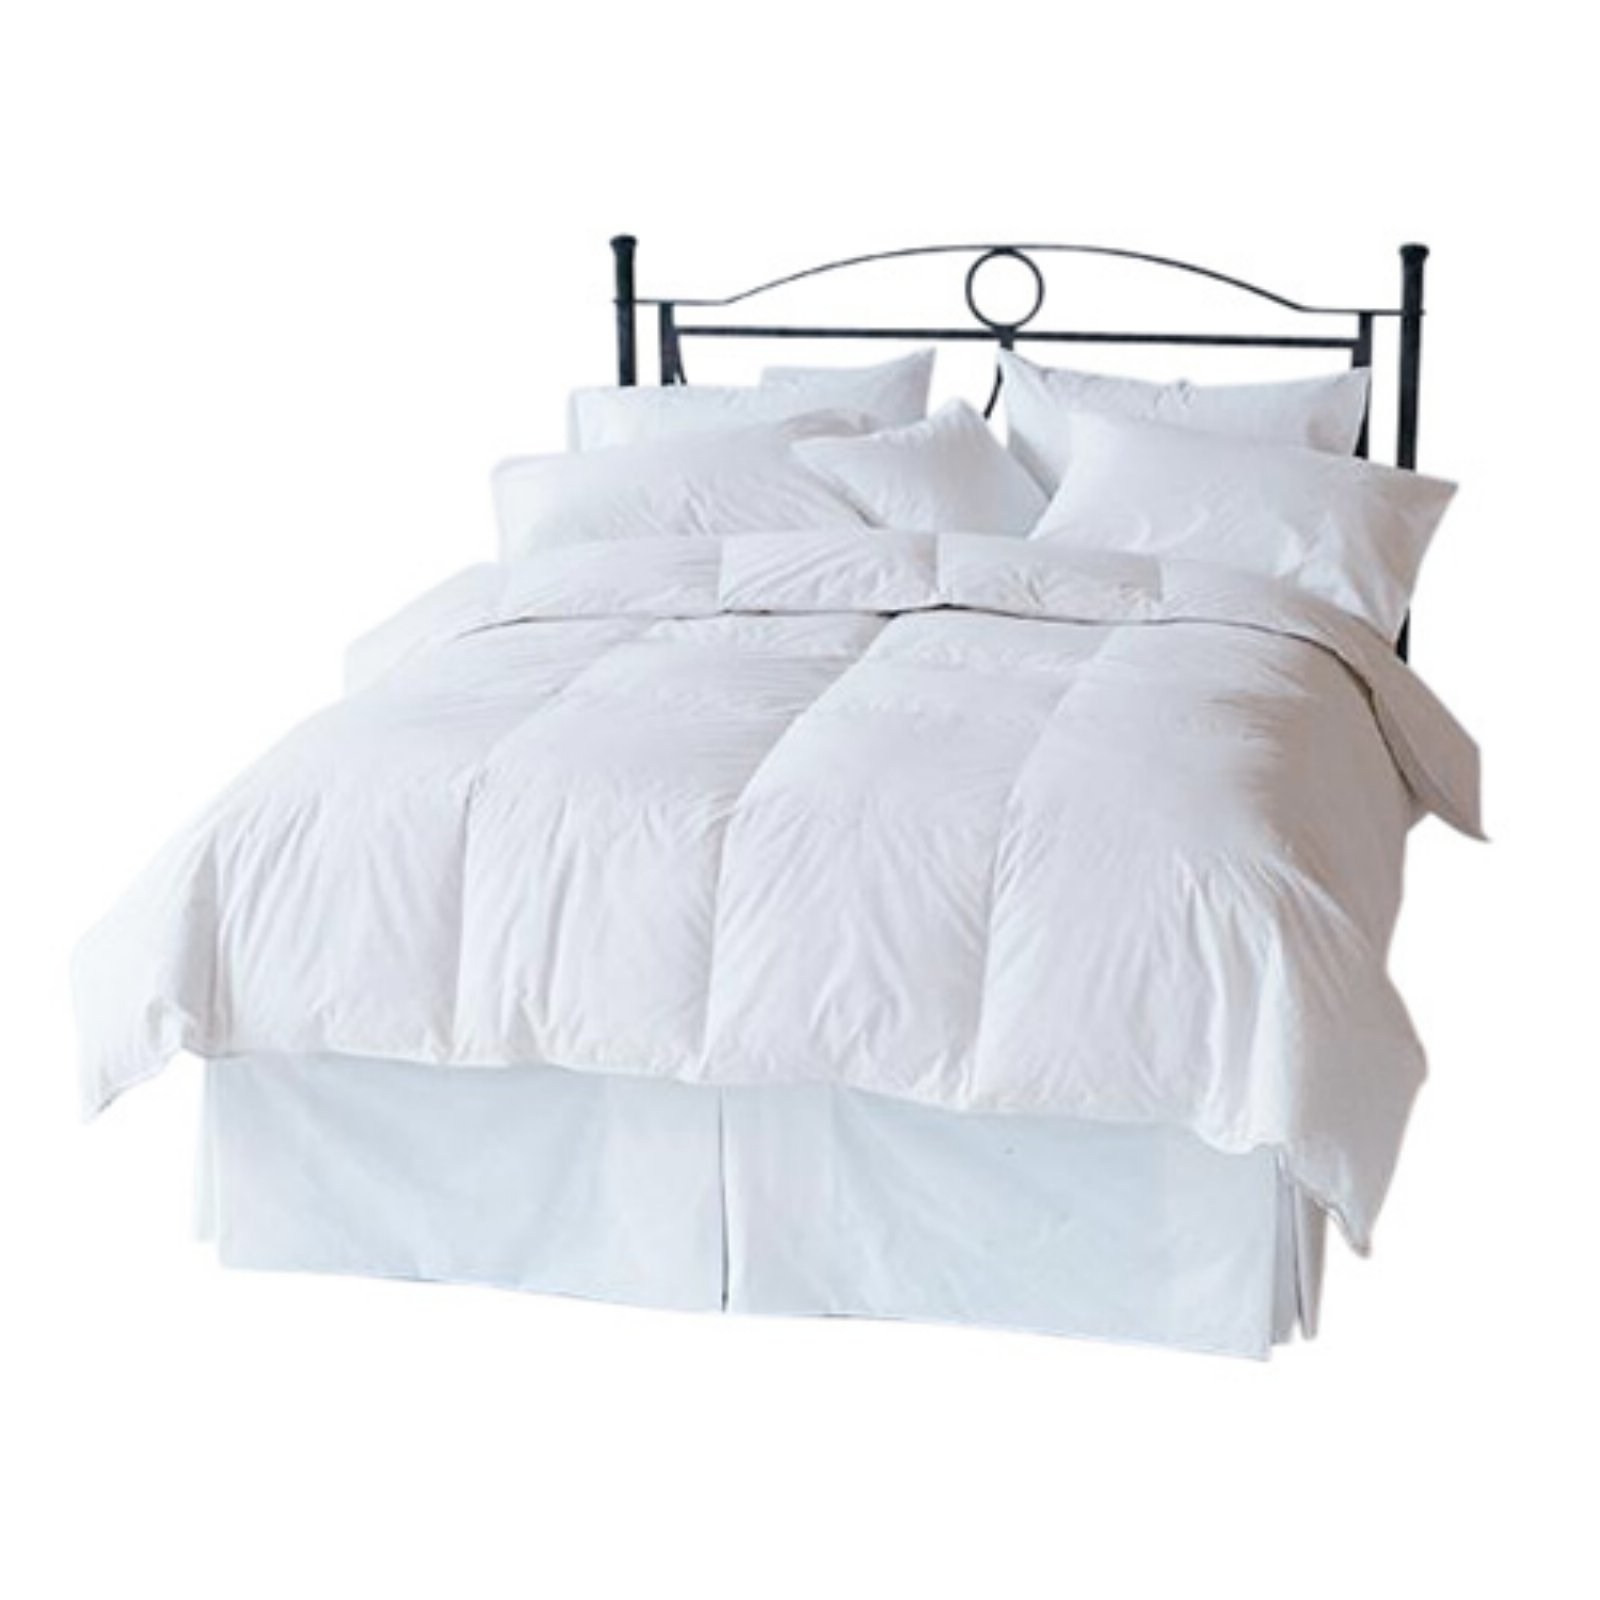 Daniadown Pinnacle Down Comforter - 4 Seasons